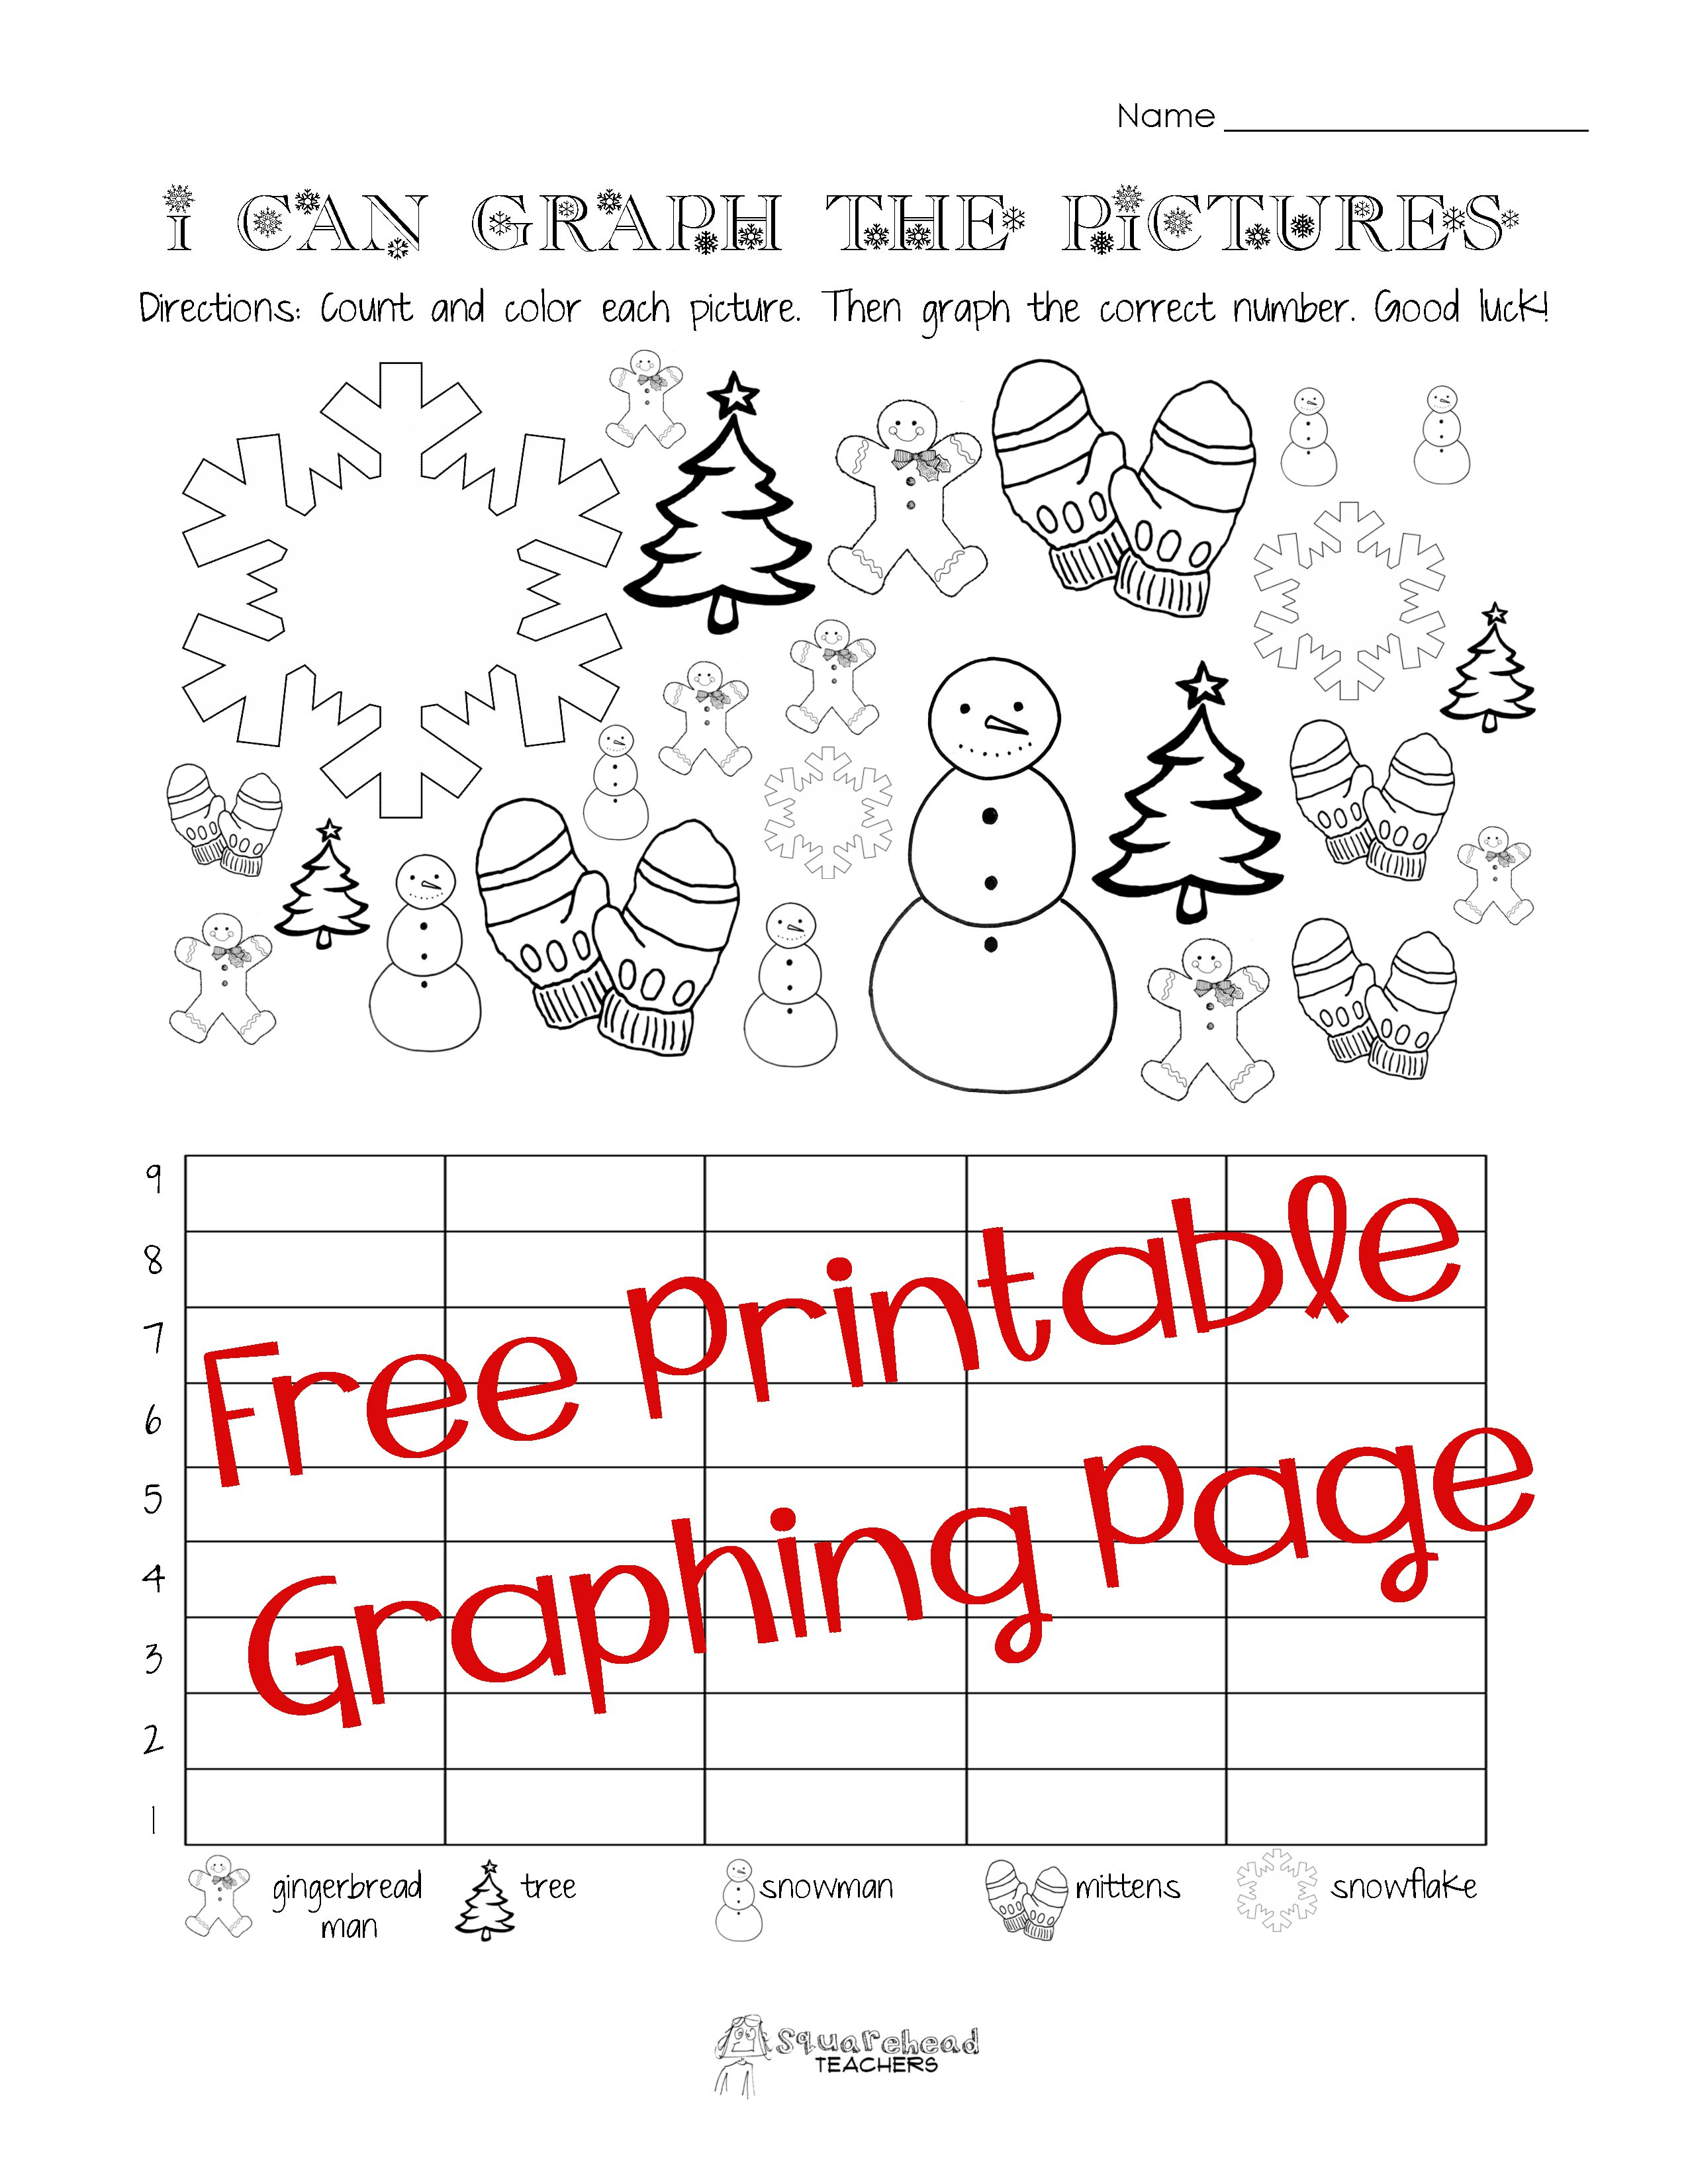 Graphing Worksheets For First Grade The Best Worksheets Image